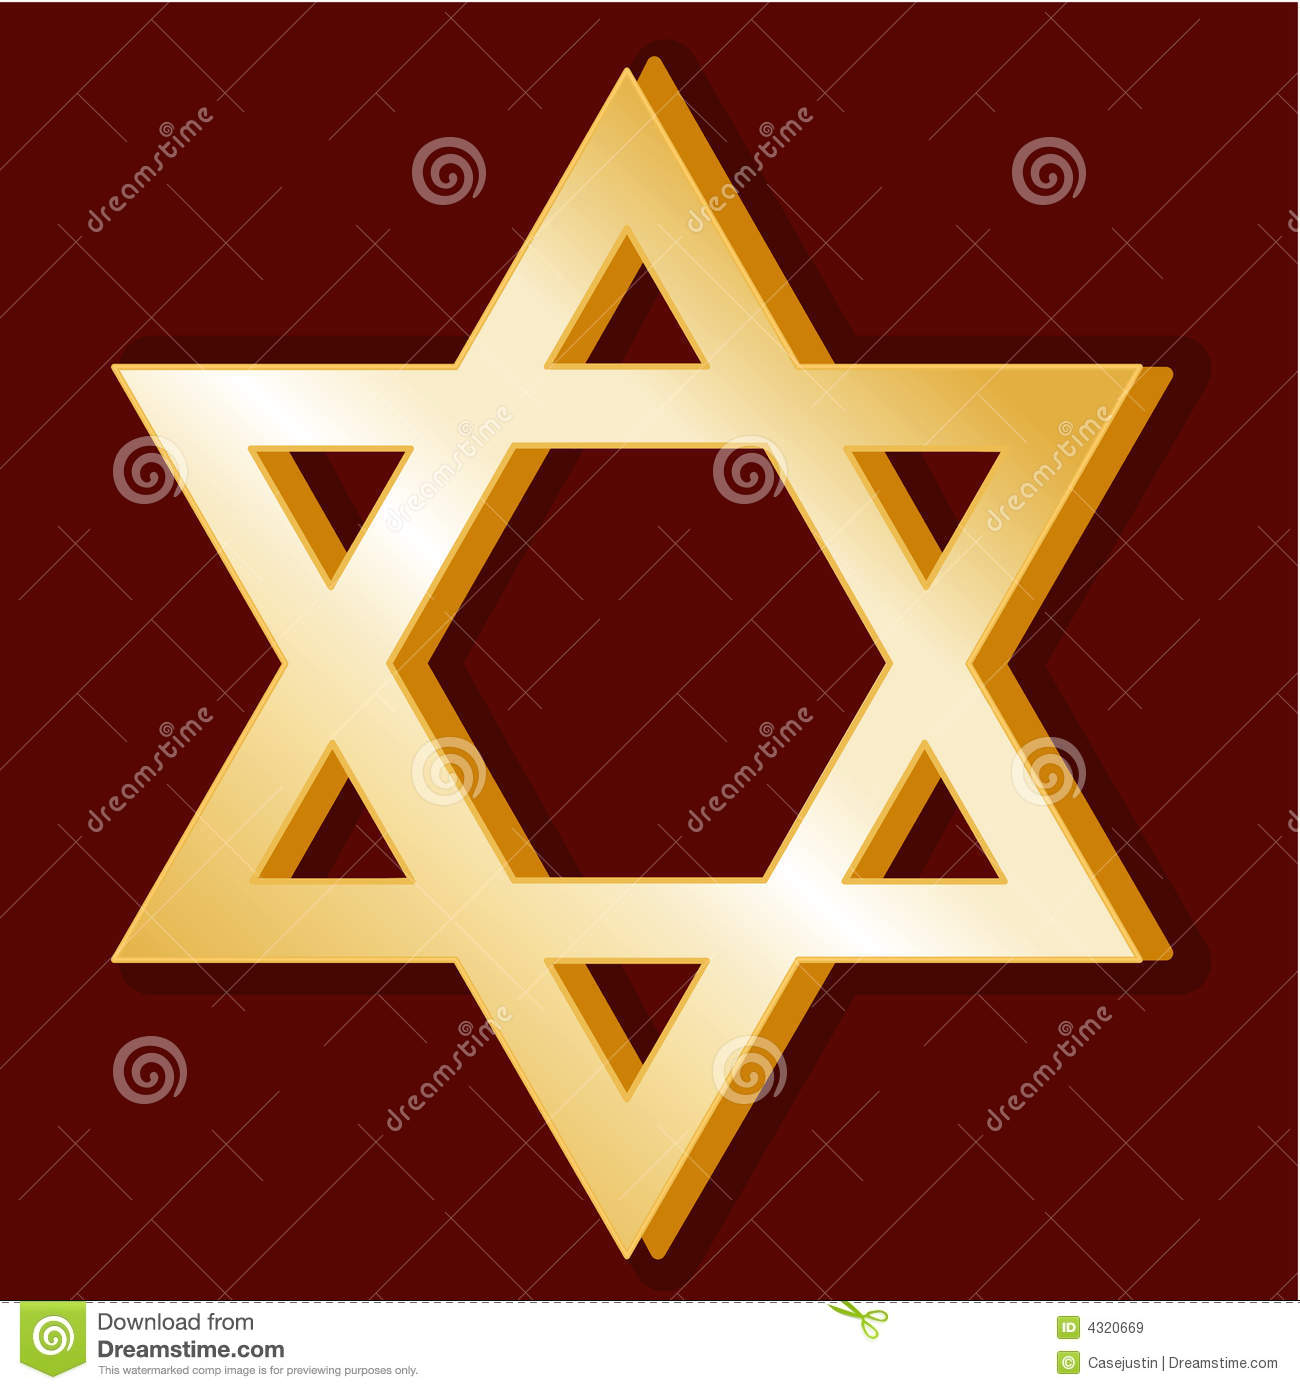 Judaism Symbol Royalty Free Stock Images Image 4320669